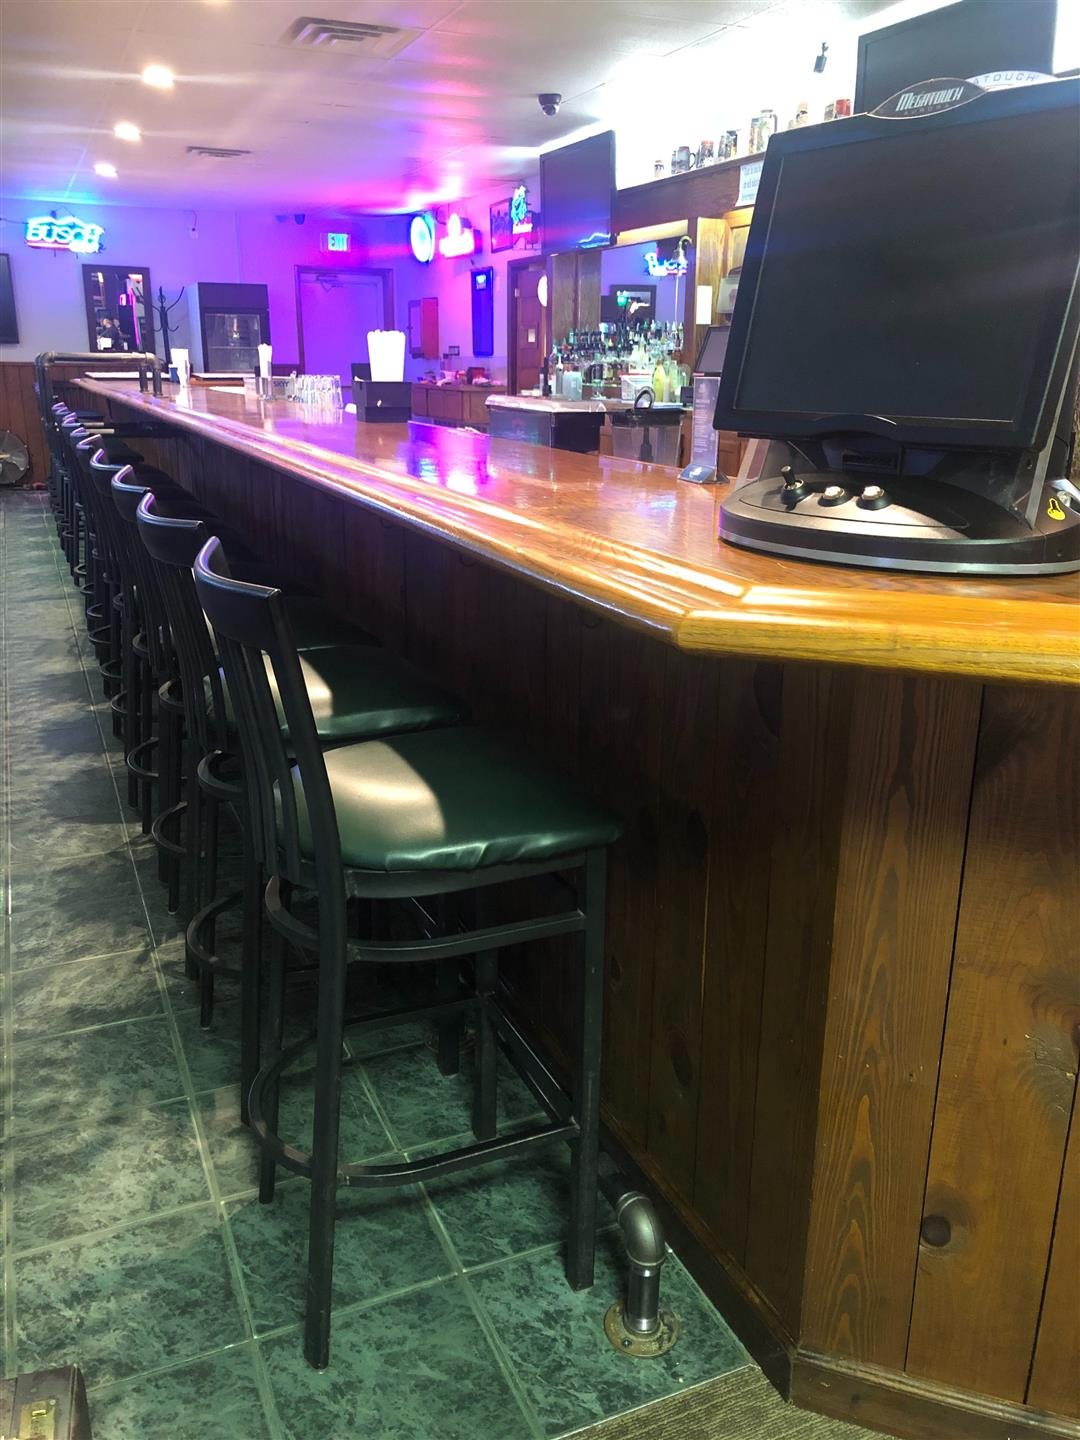 main bar area with several chairs